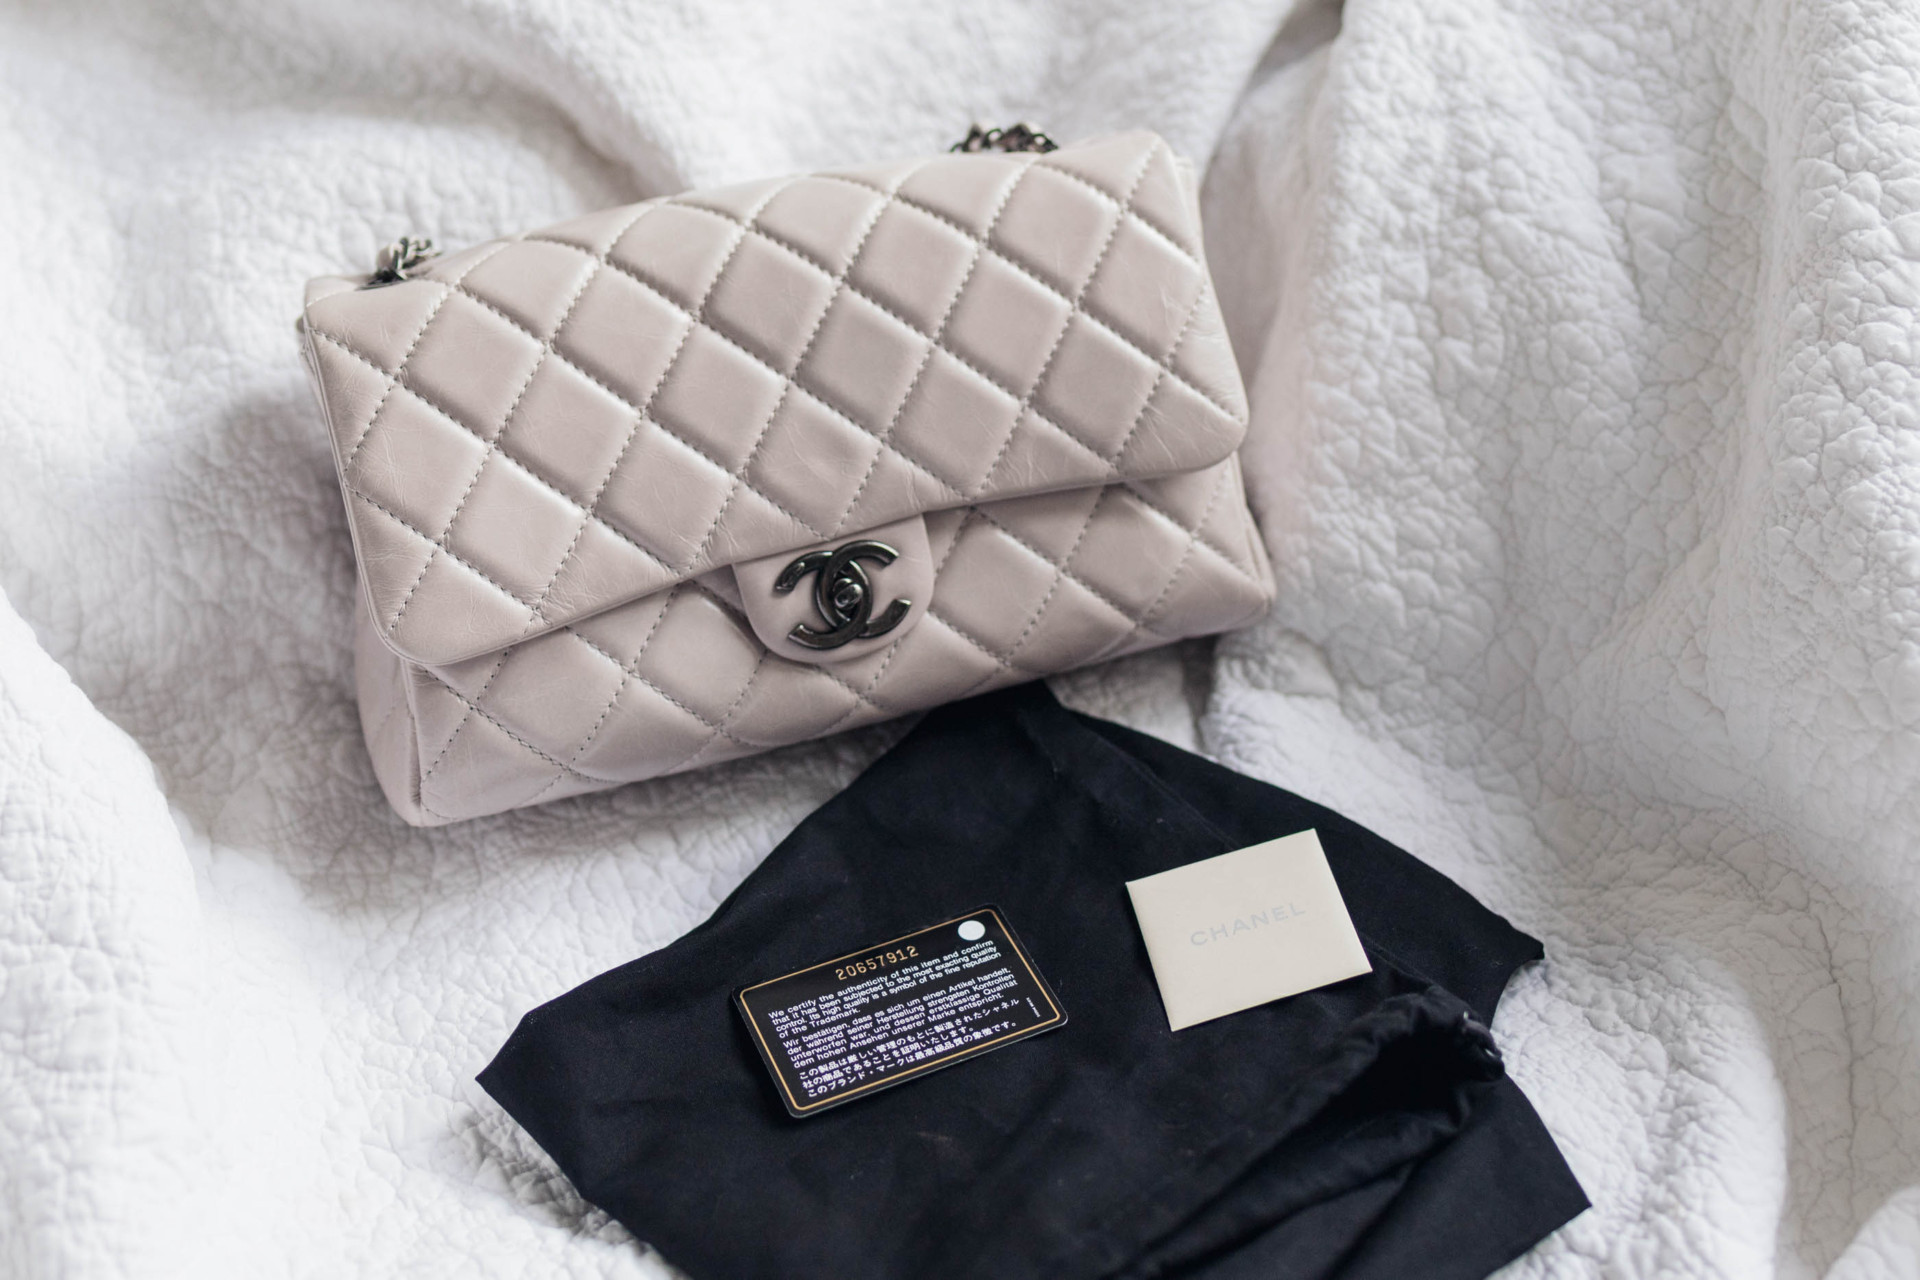 653dbecb7151 Chanel Seasonal Grey / Taupe Large Flap. Dustbag, authenticity card